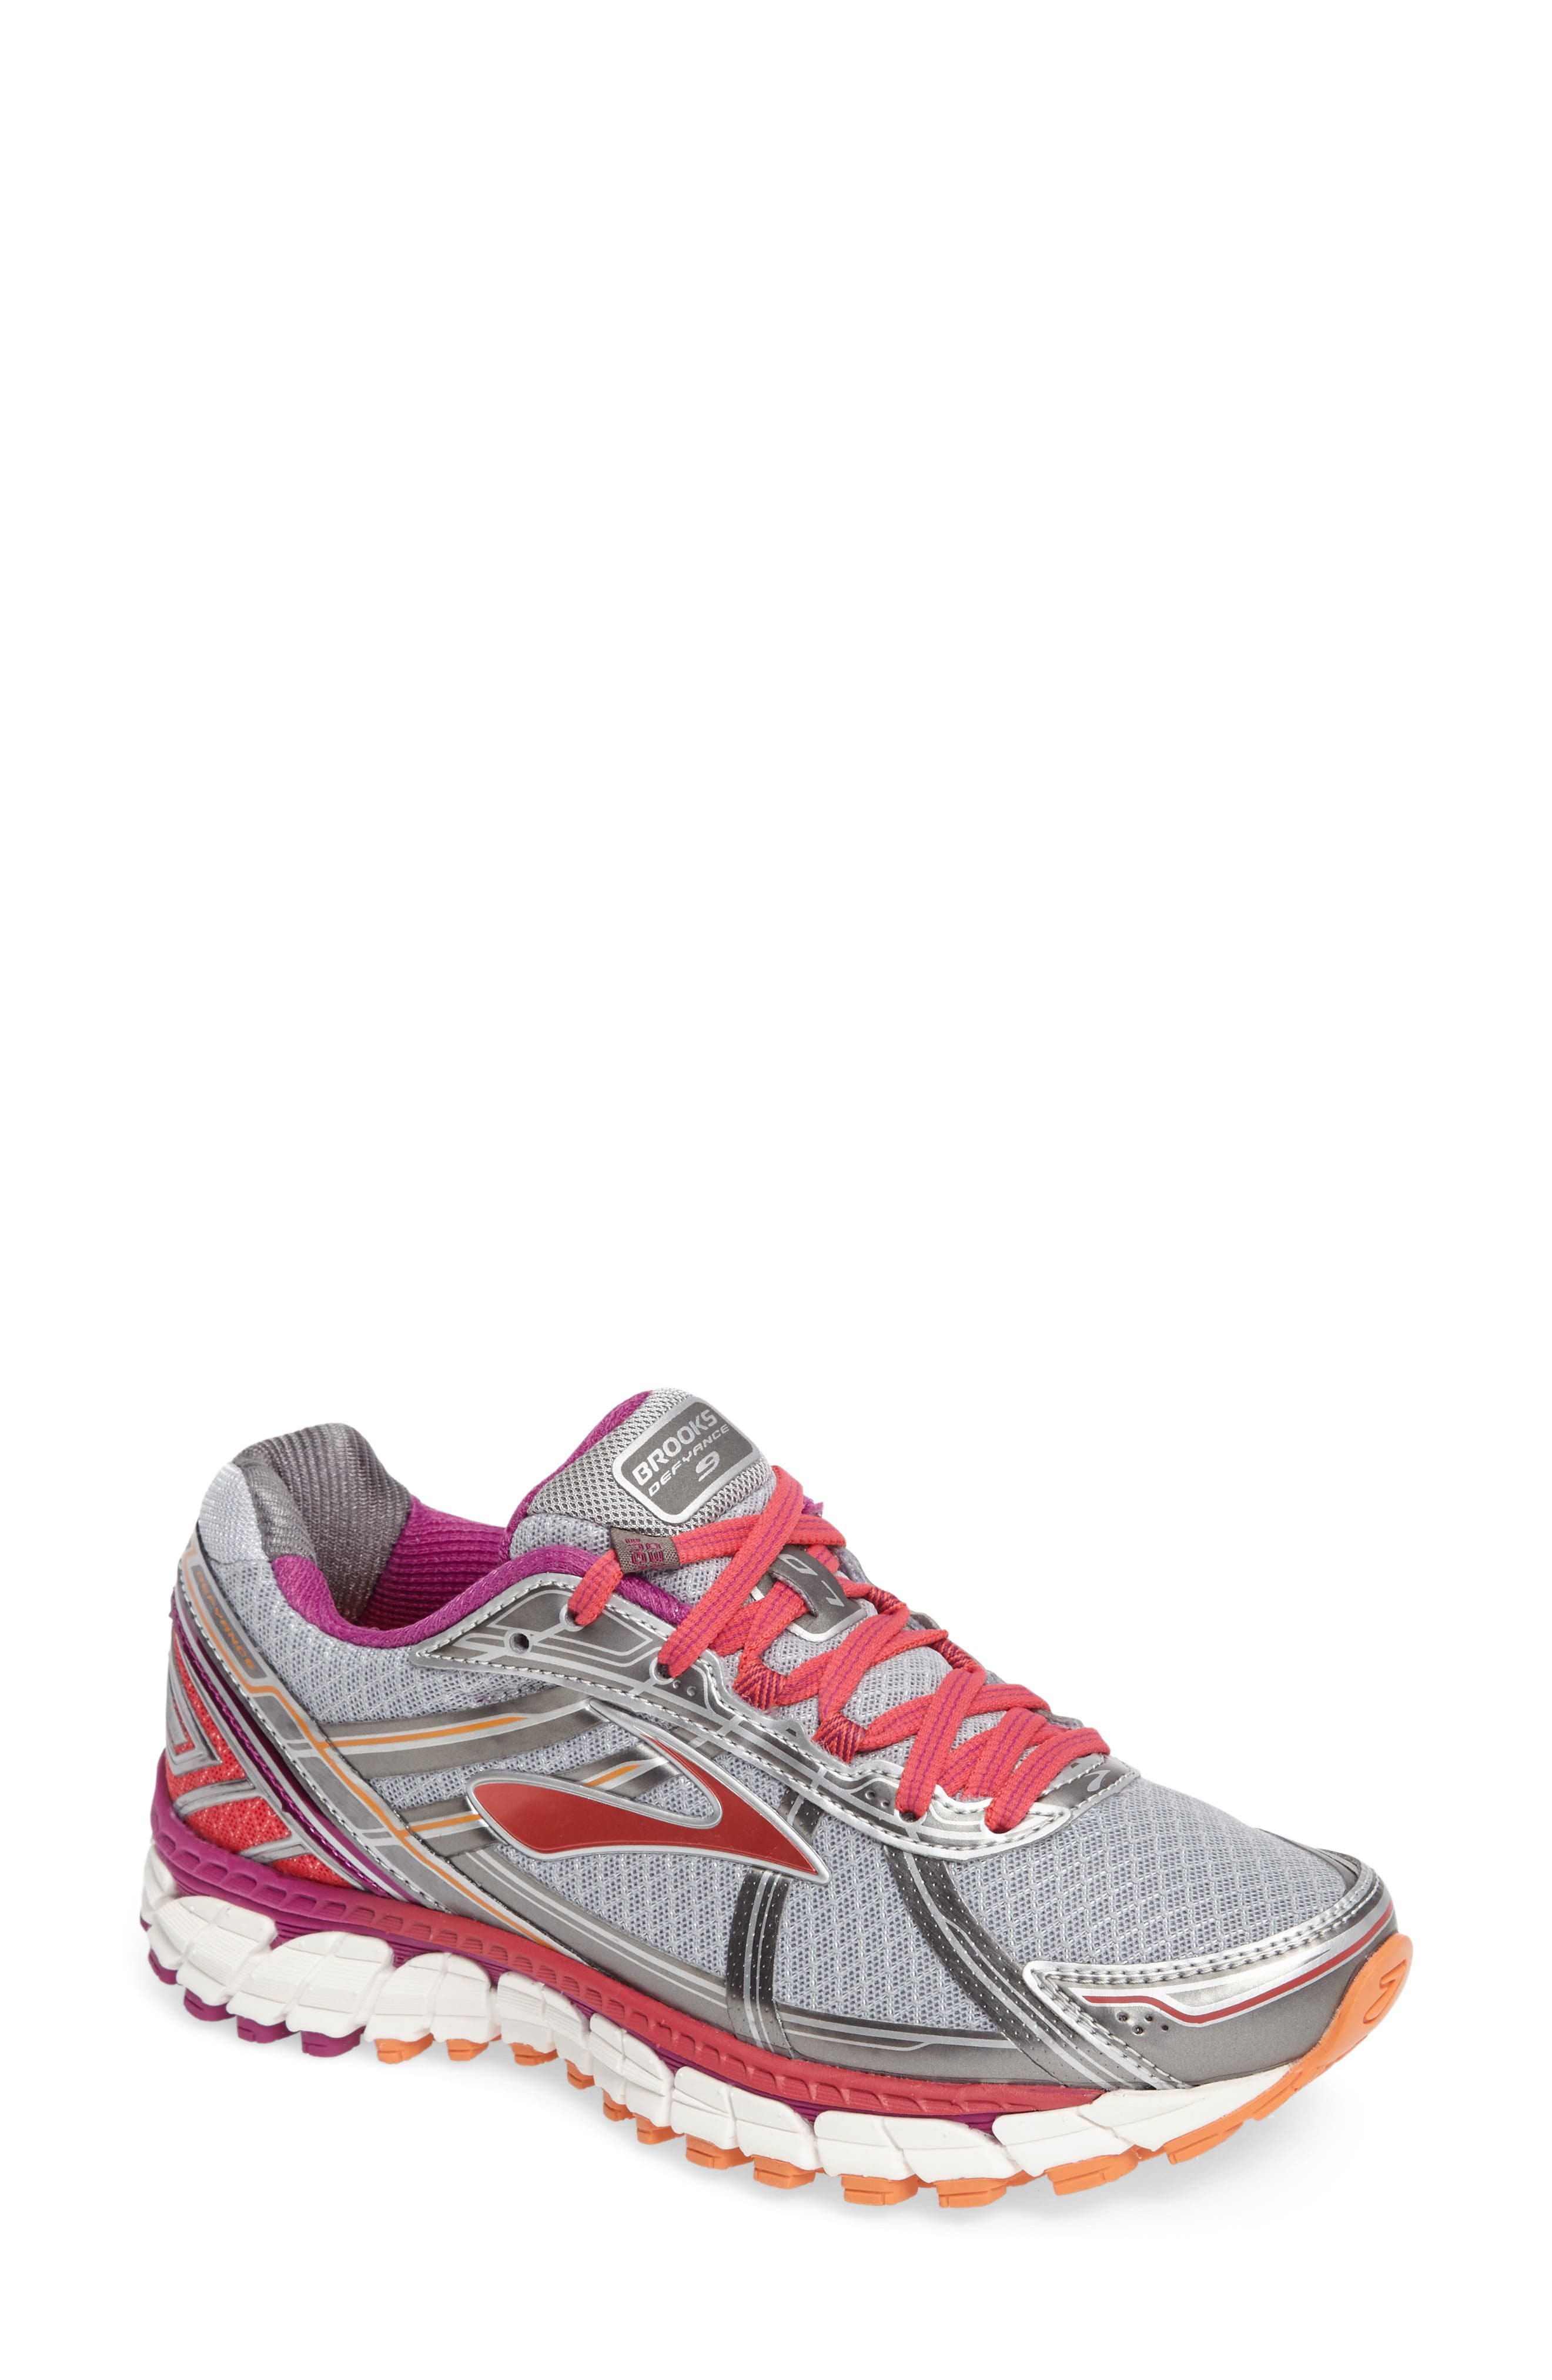 Defyance 9 Running Shoe,                             Main thumbnail 1, color,                             040